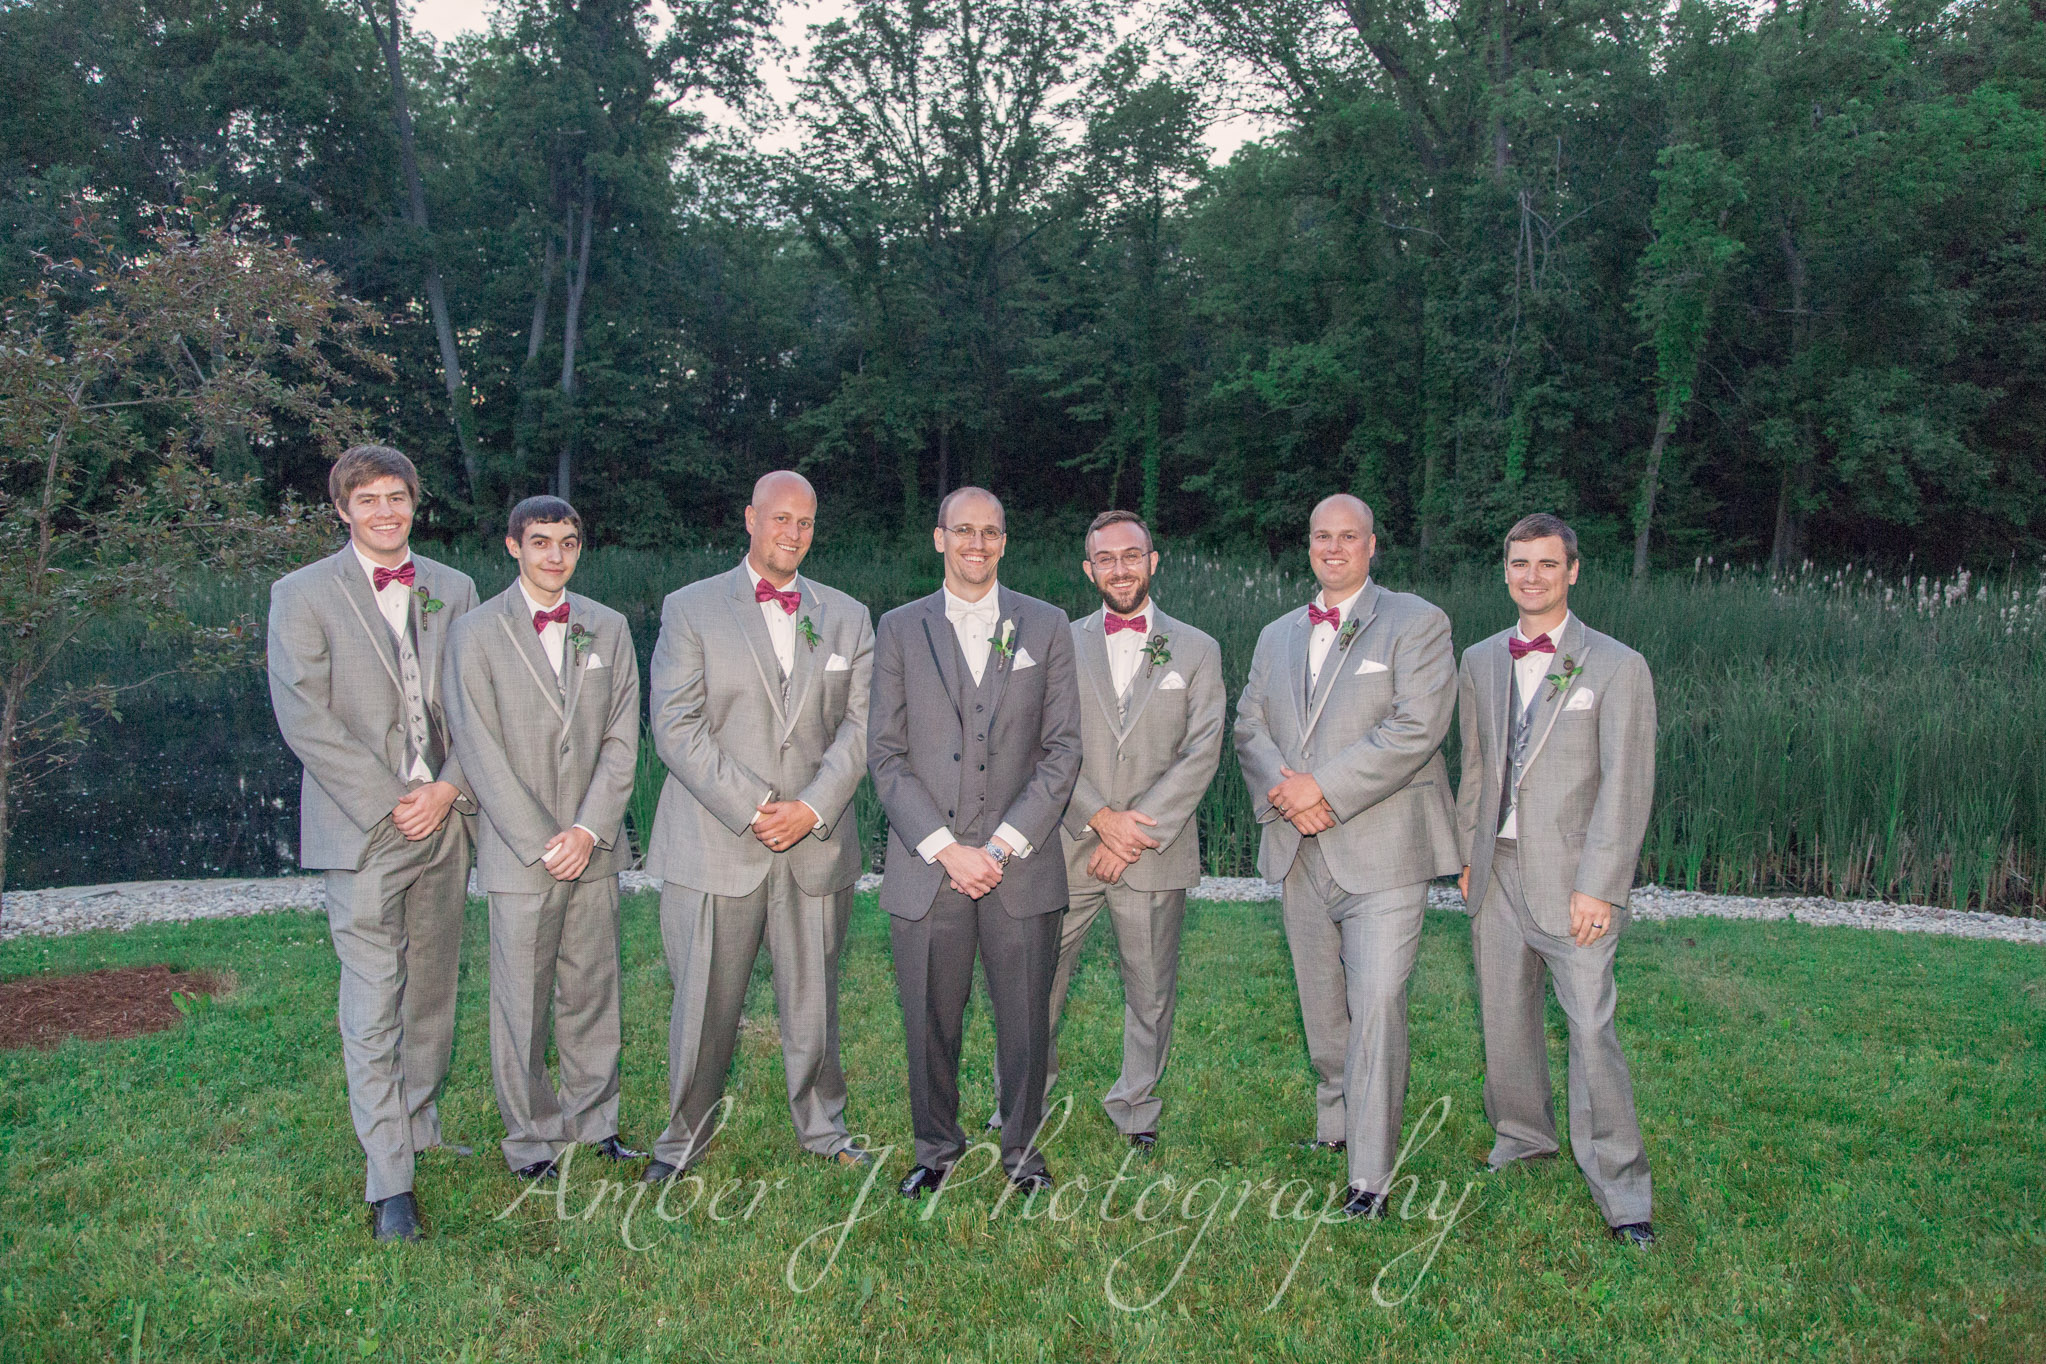 Sommer_Wedding_AmberJphotography_28.jpg